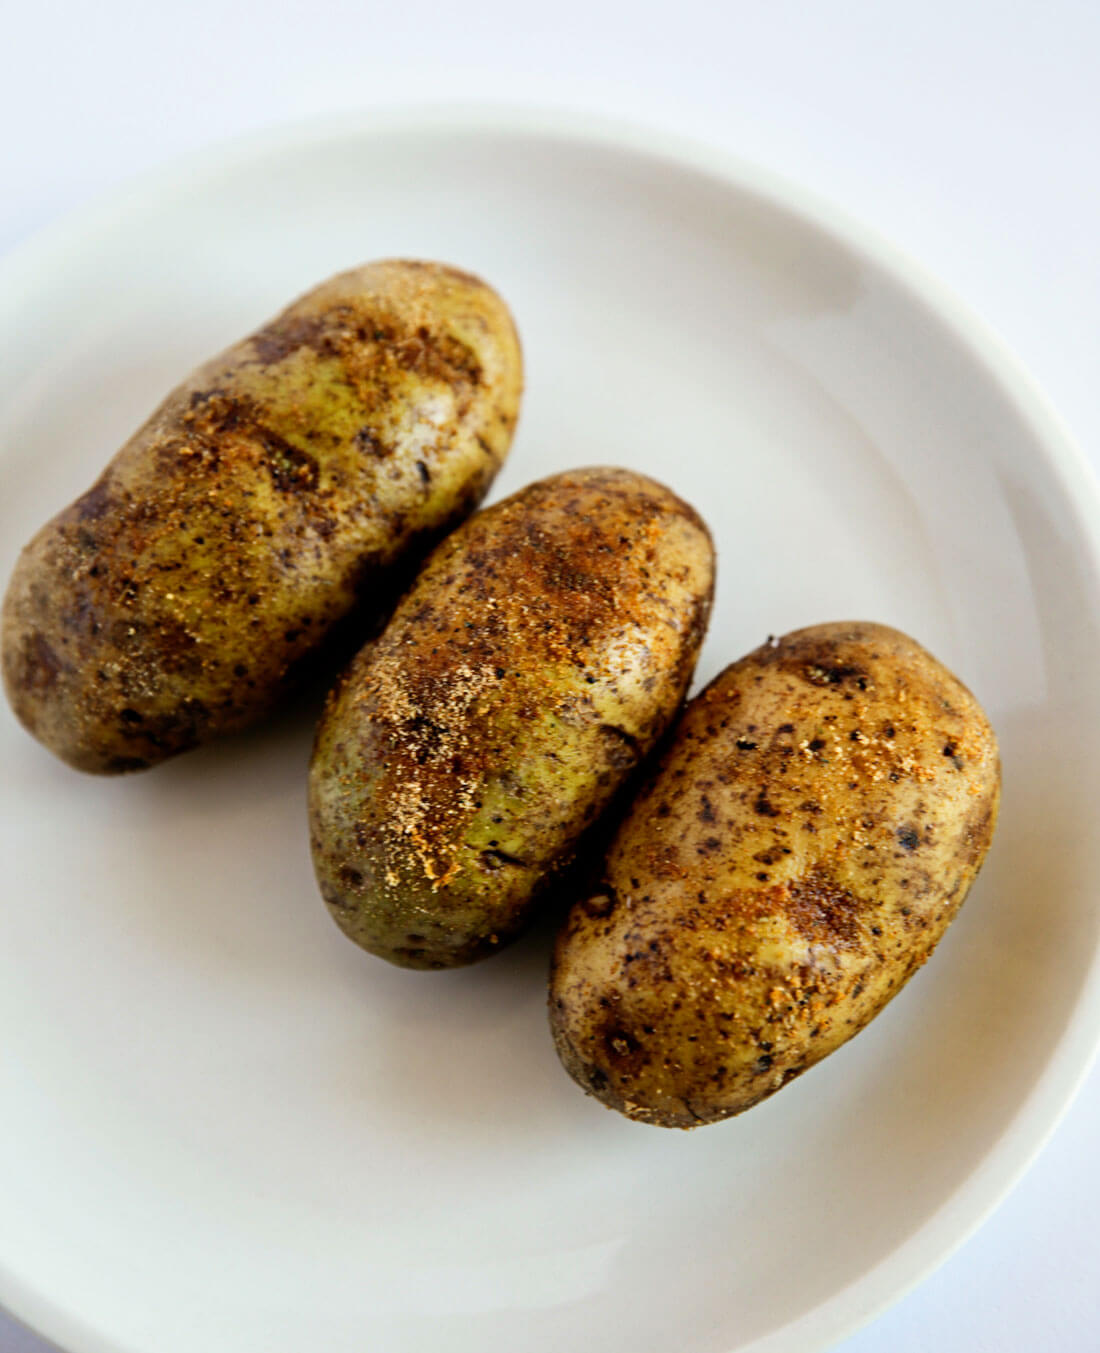 How to make baked potatoes in the air fryer